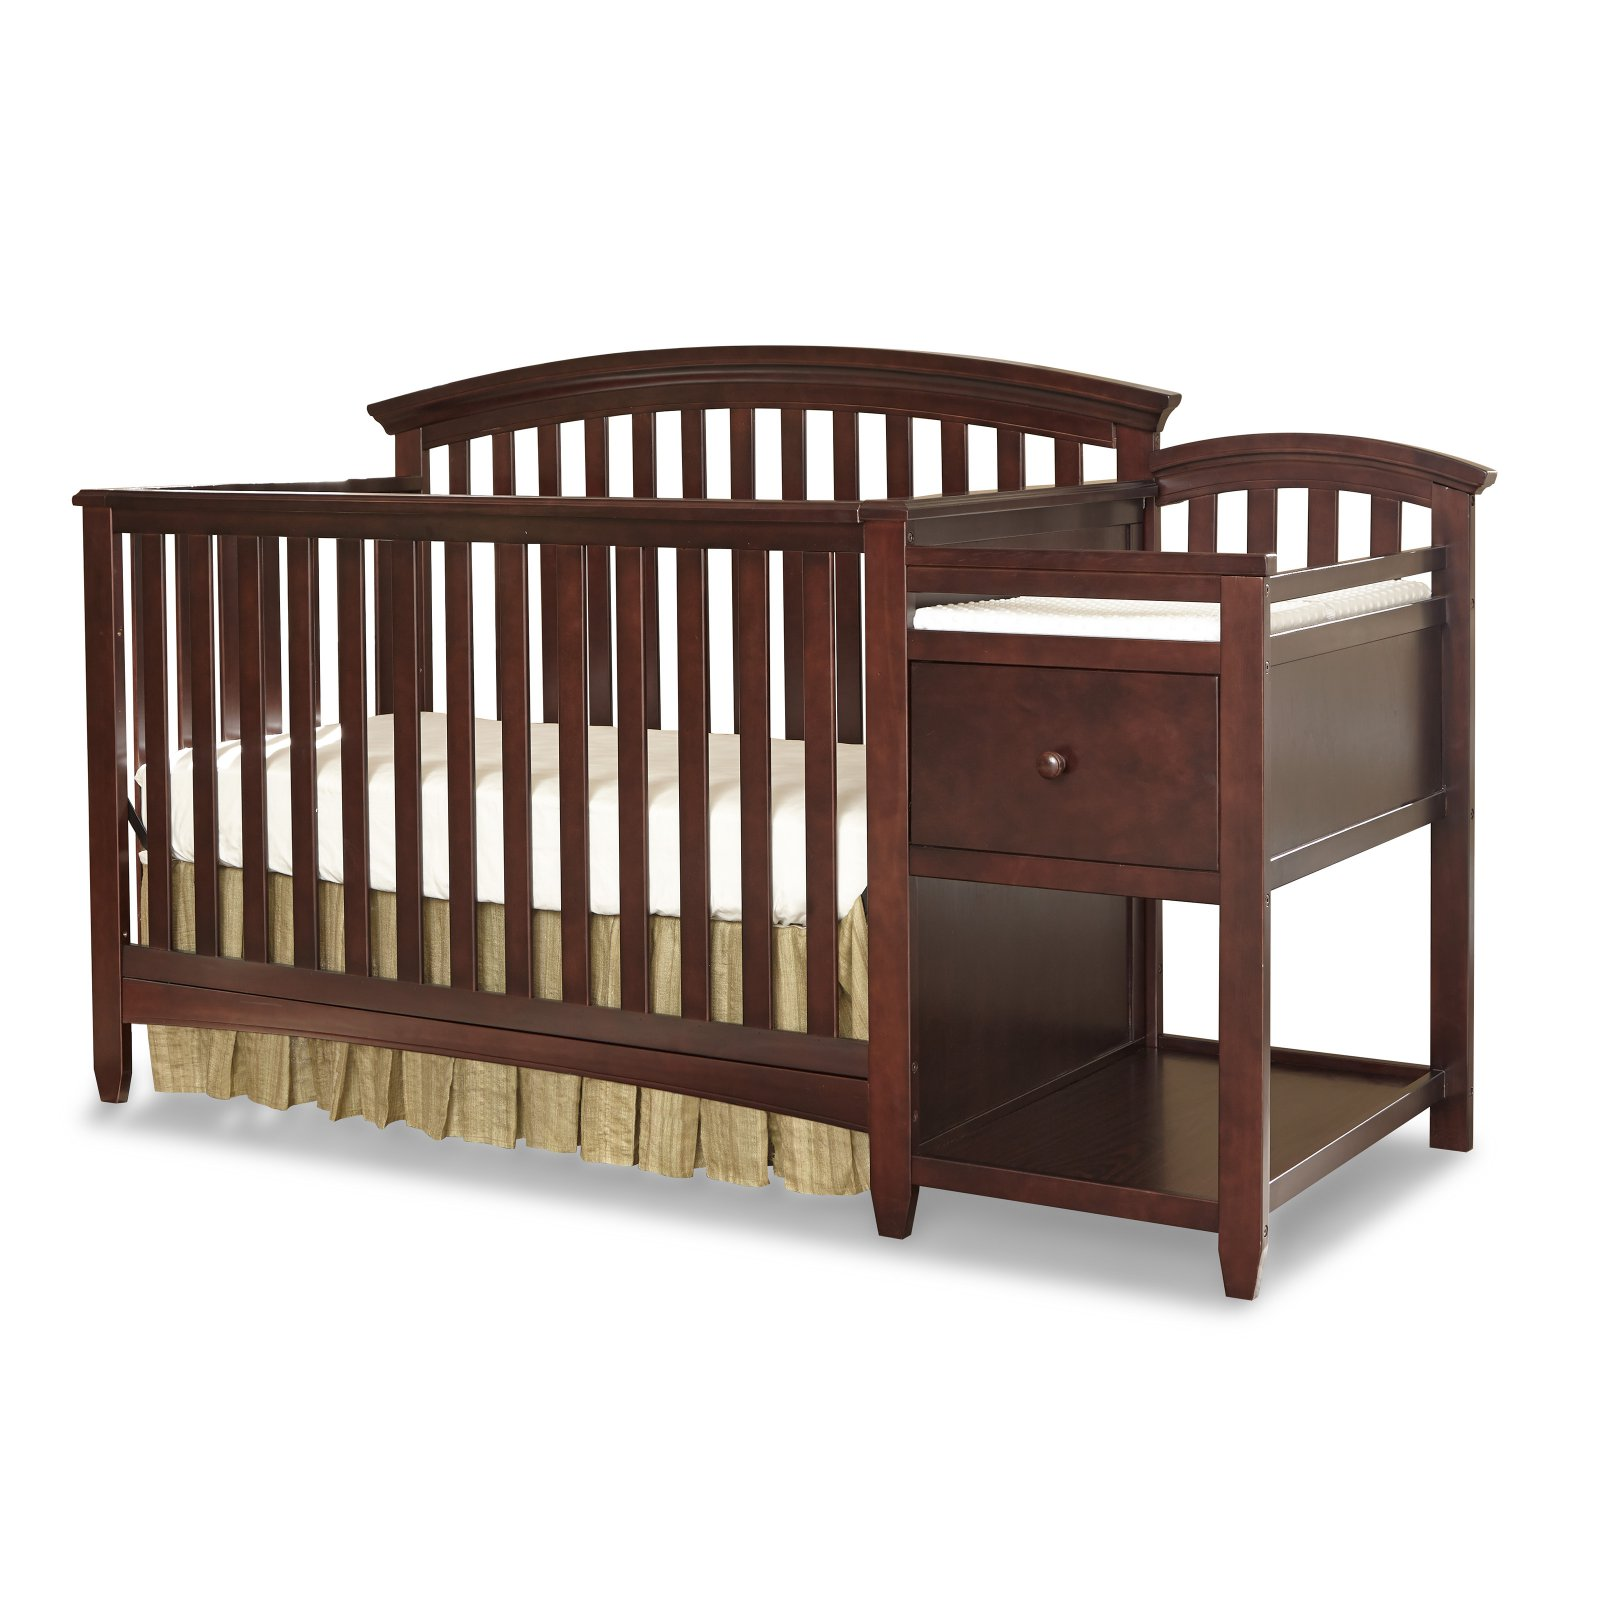 imagio baby montville 4 in 1 convertible crib and changer with pad chocolate mist